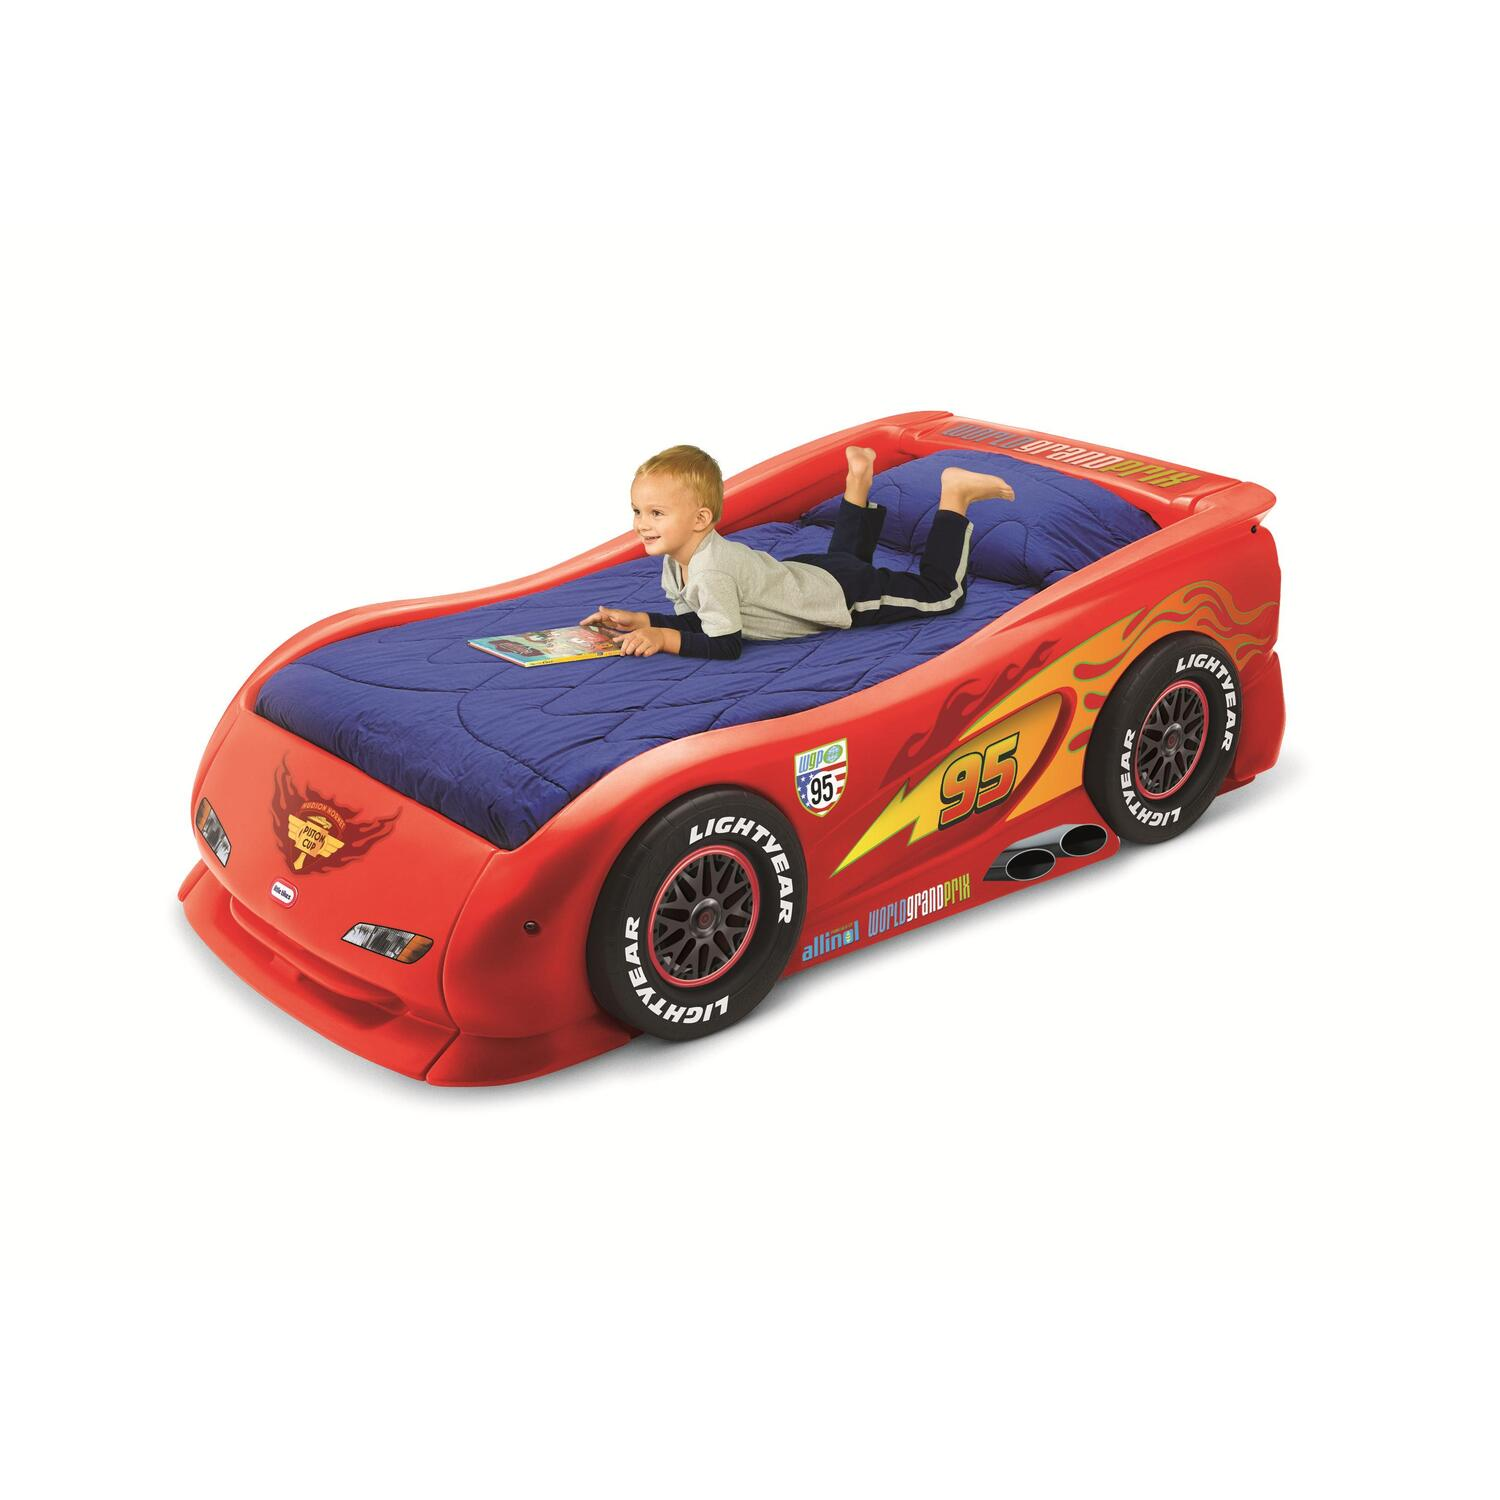 Little Tikes Lightning McQueen Sports Car Twin Bed by OJ Commerce 625336M - $595.99